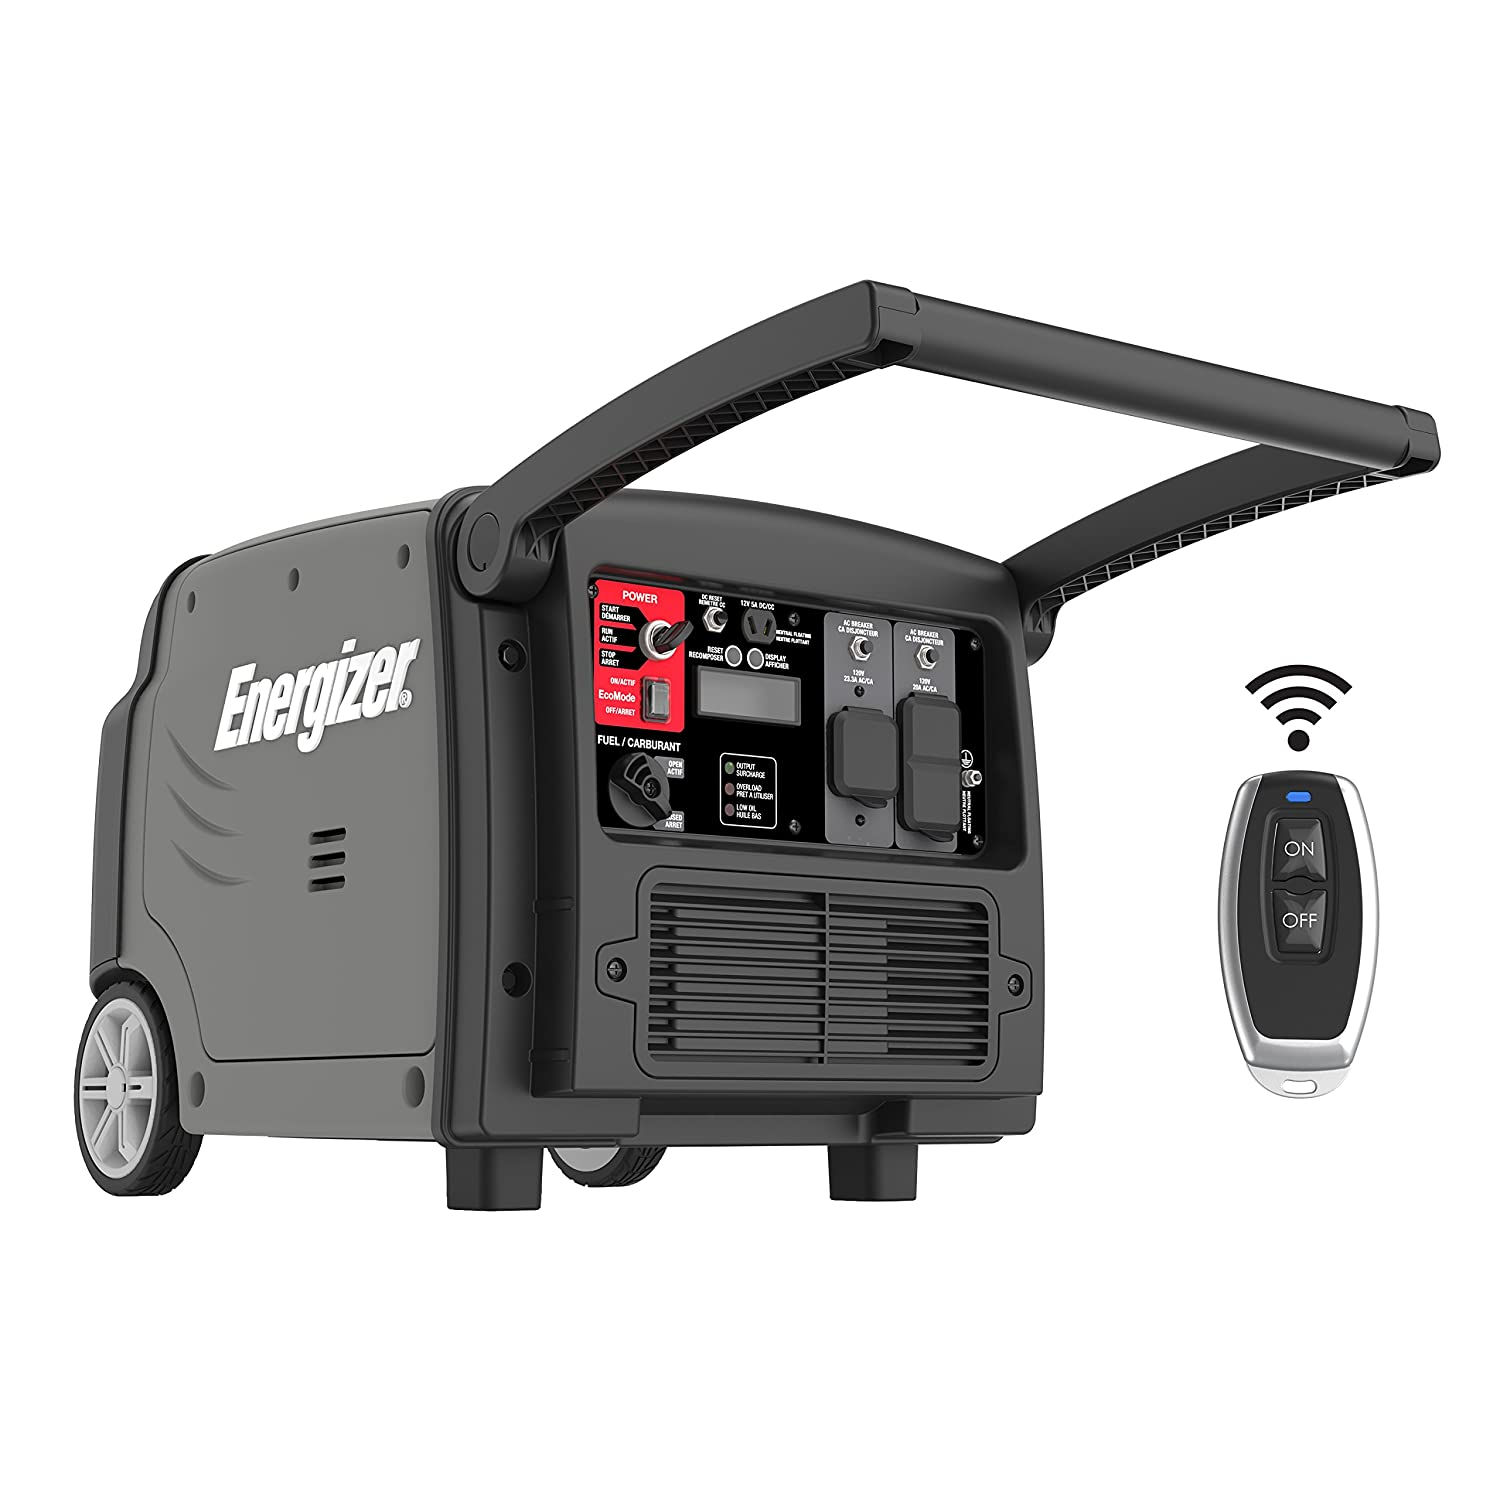 Predator 4000 Generator Review Is It e The Most Reliable